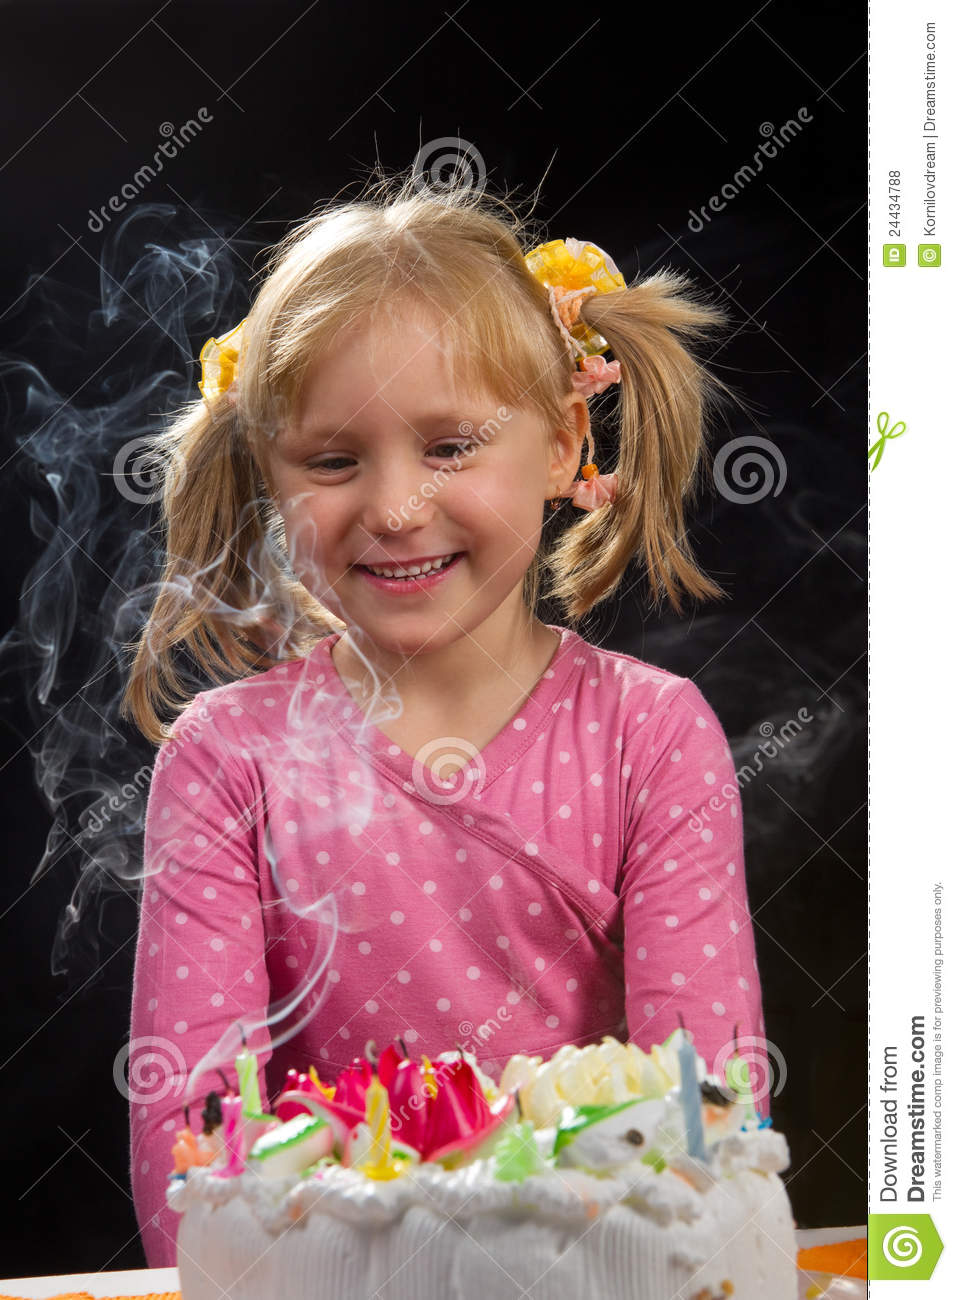 Girl Blowing Out Candles Stock Photo Image Of Cheerful